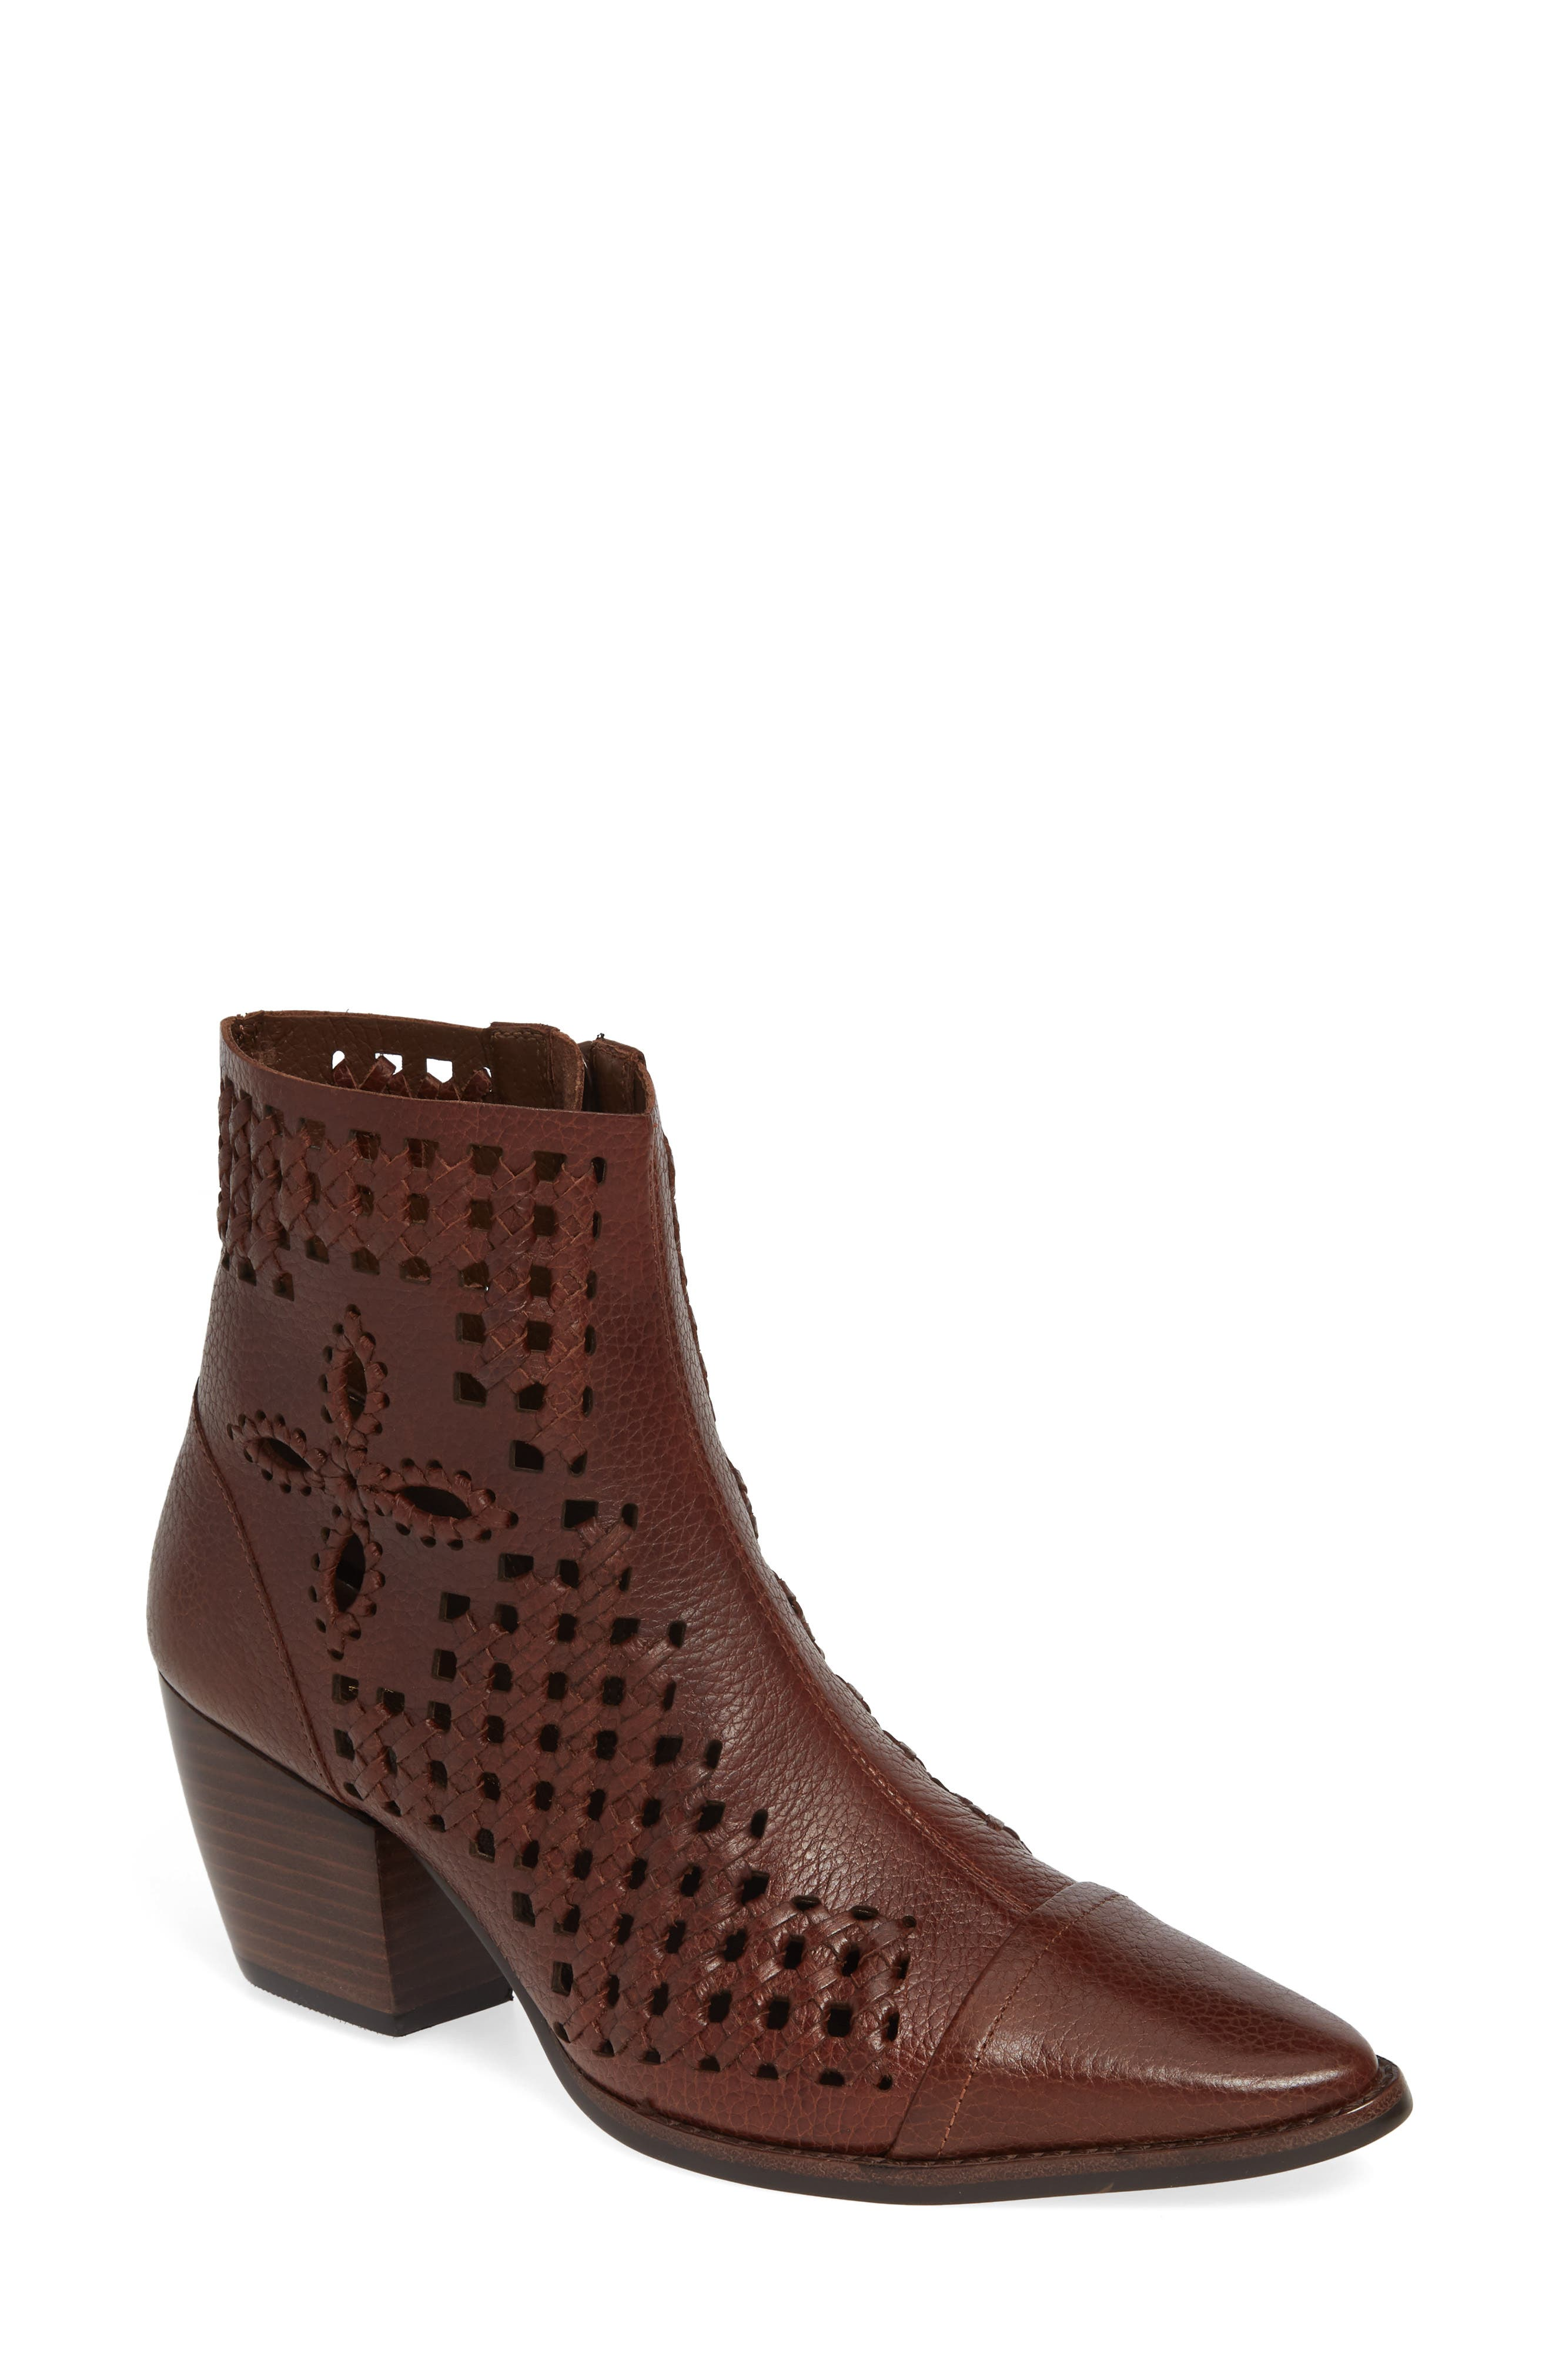 Matisse Bello Woven Pointy Toe Bootie- Brown